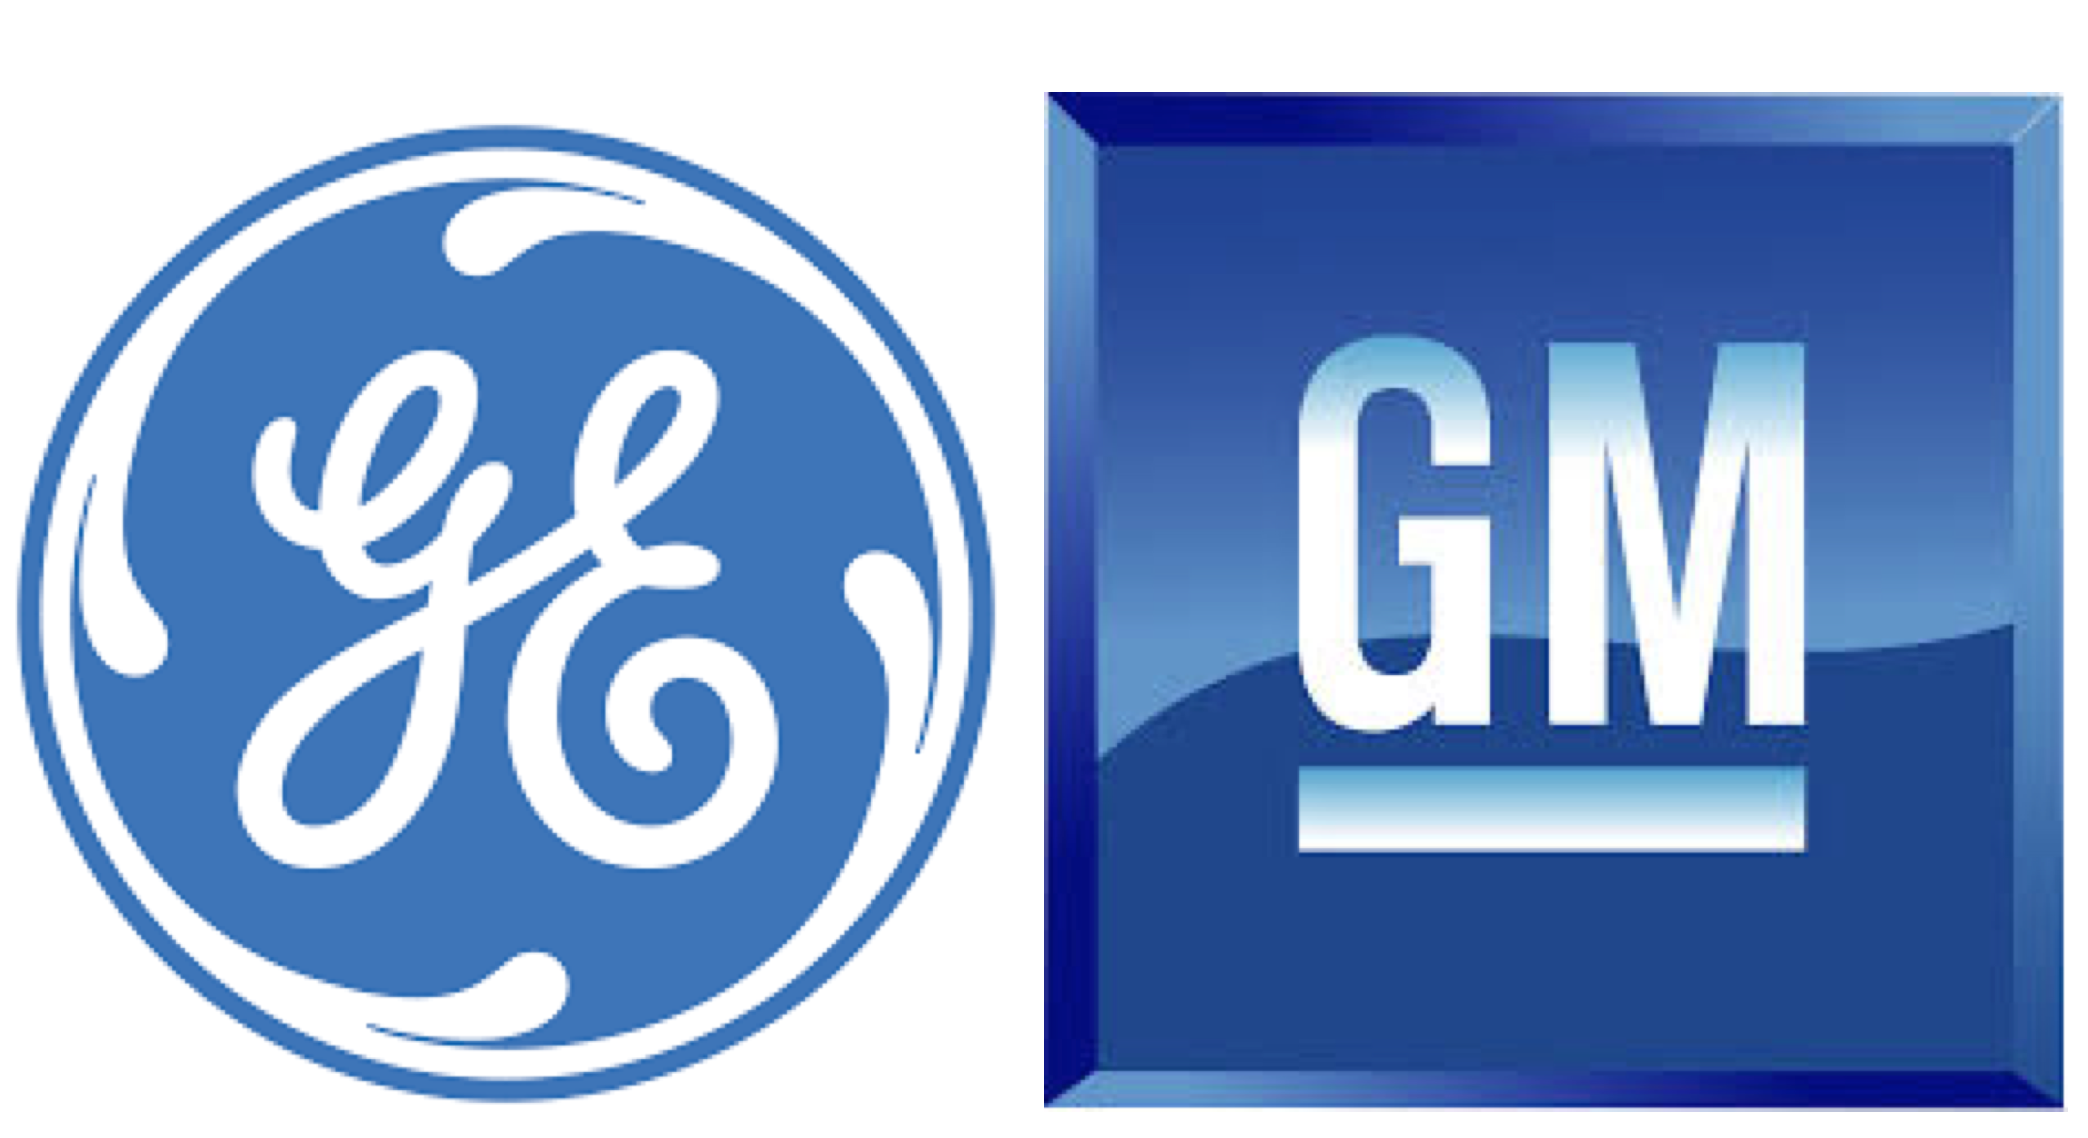 general electric stock vs general motors stock cabot wealth network